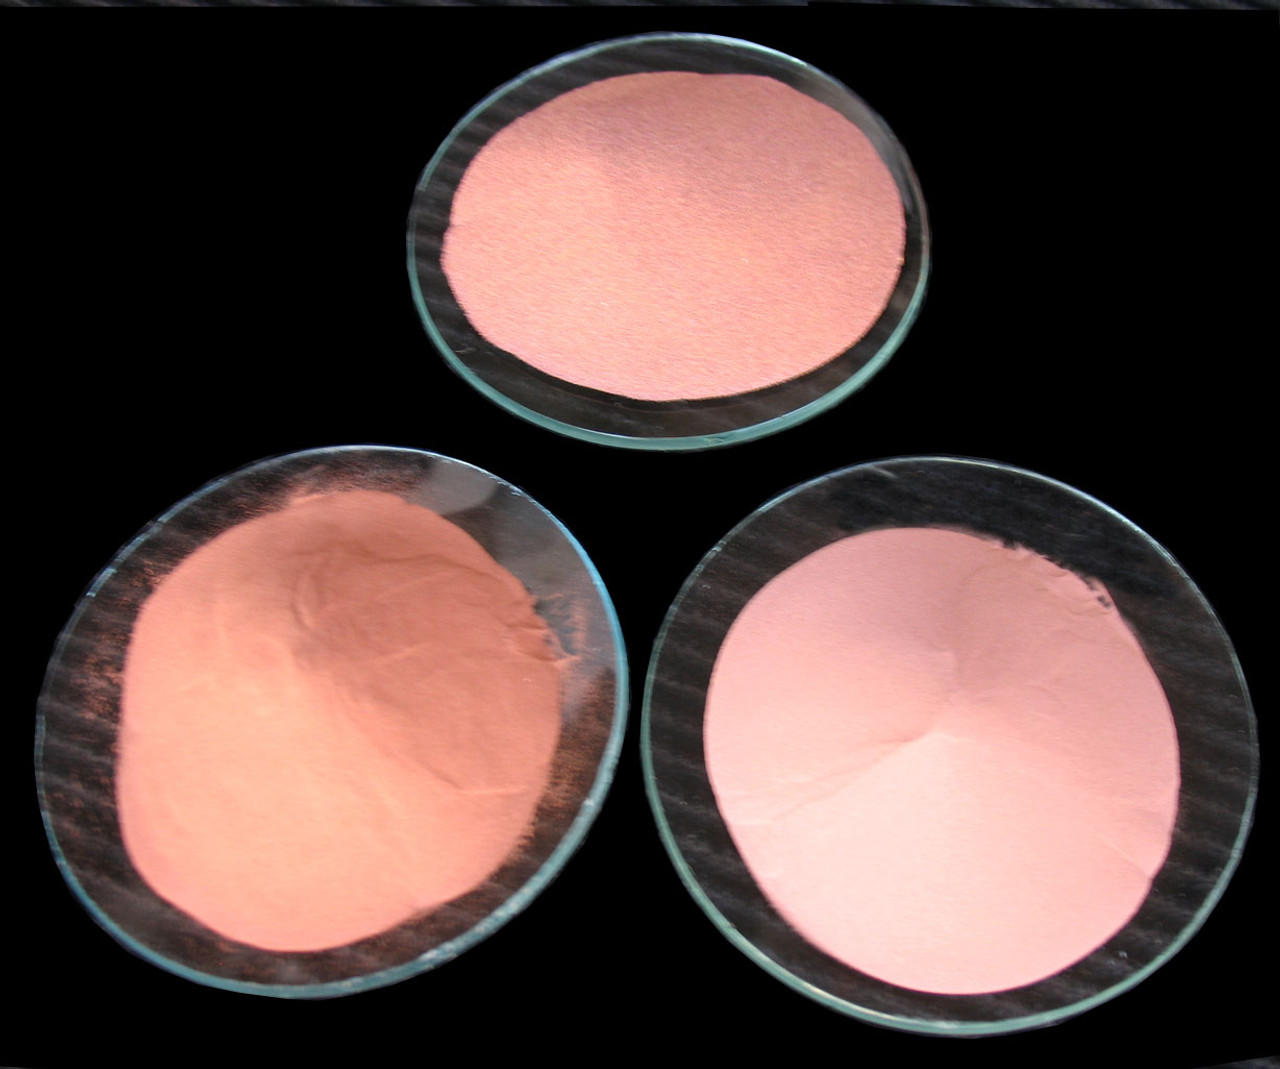 Highly pure >99% SPHERICAL COPPER POWDER MADE USING INERT GAS ATOMIZATION. Mesh 400 Spherical Copper.